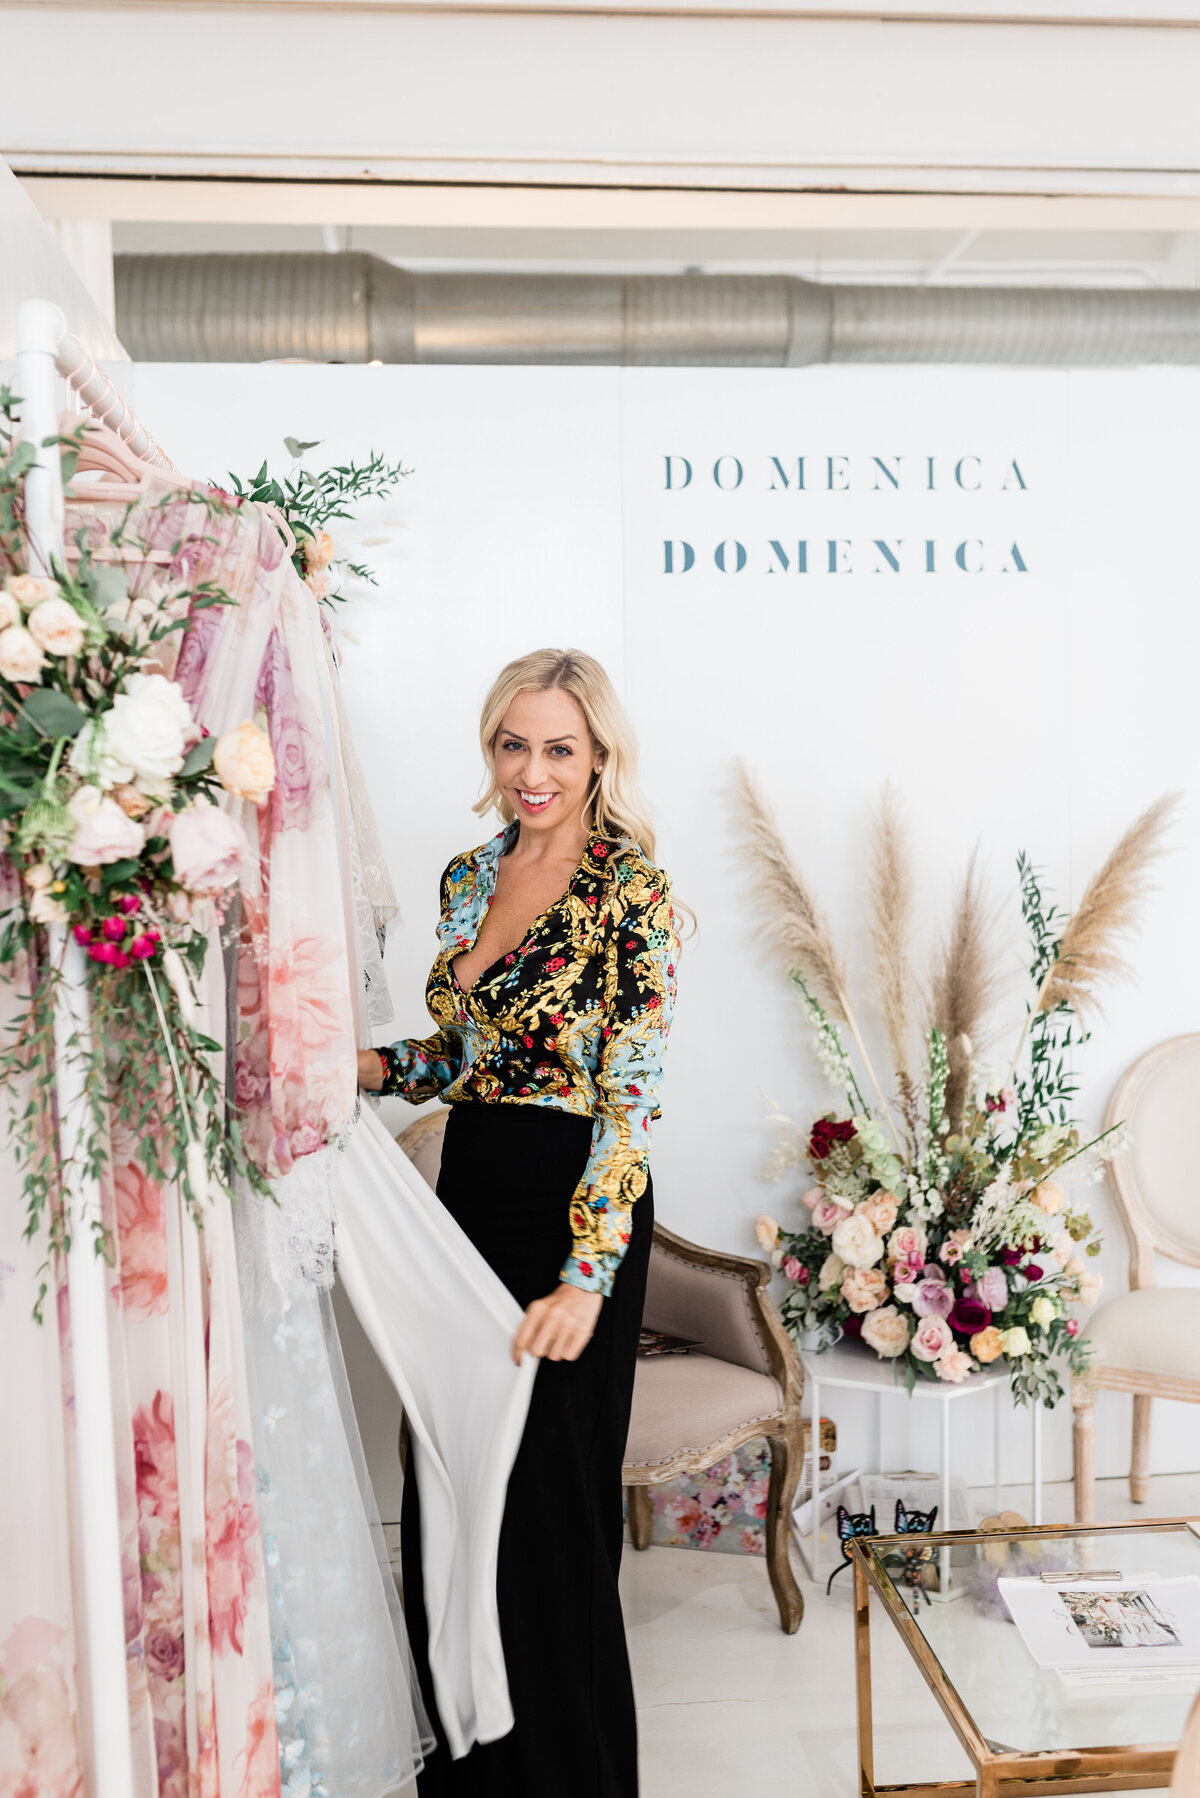 DOMENICADOMENICANYBFW2019-20